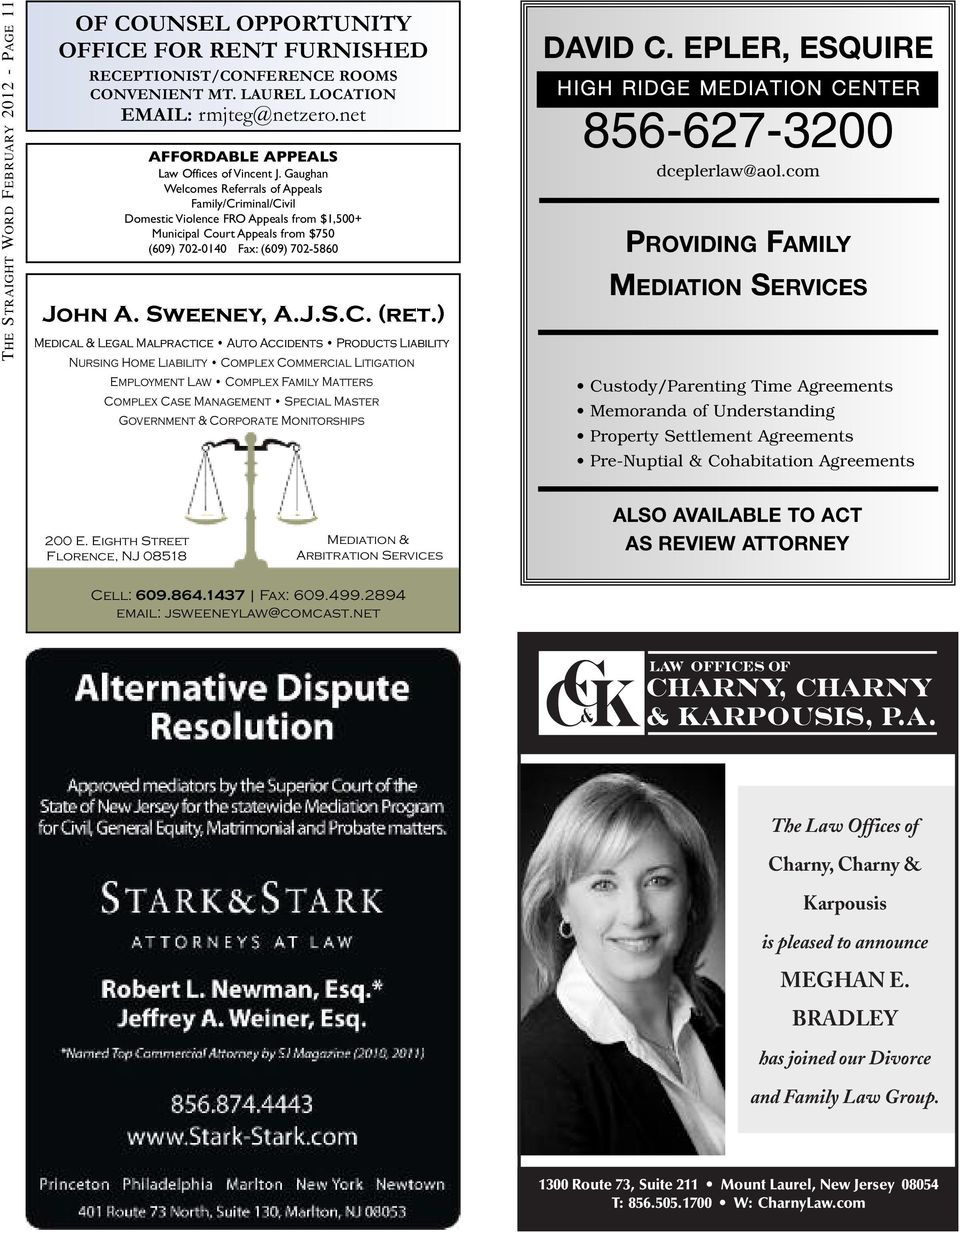 Gaughan Welcomes Referrals of Appeals Family/Criminal/Civil Domestic Violence FRO Appeals from $1,500+ Municipal Court Appeals from $750 (609) 702-0140 Fax: (609) 702-5860 John A. Sweeney, A.J.S.C. (ret.